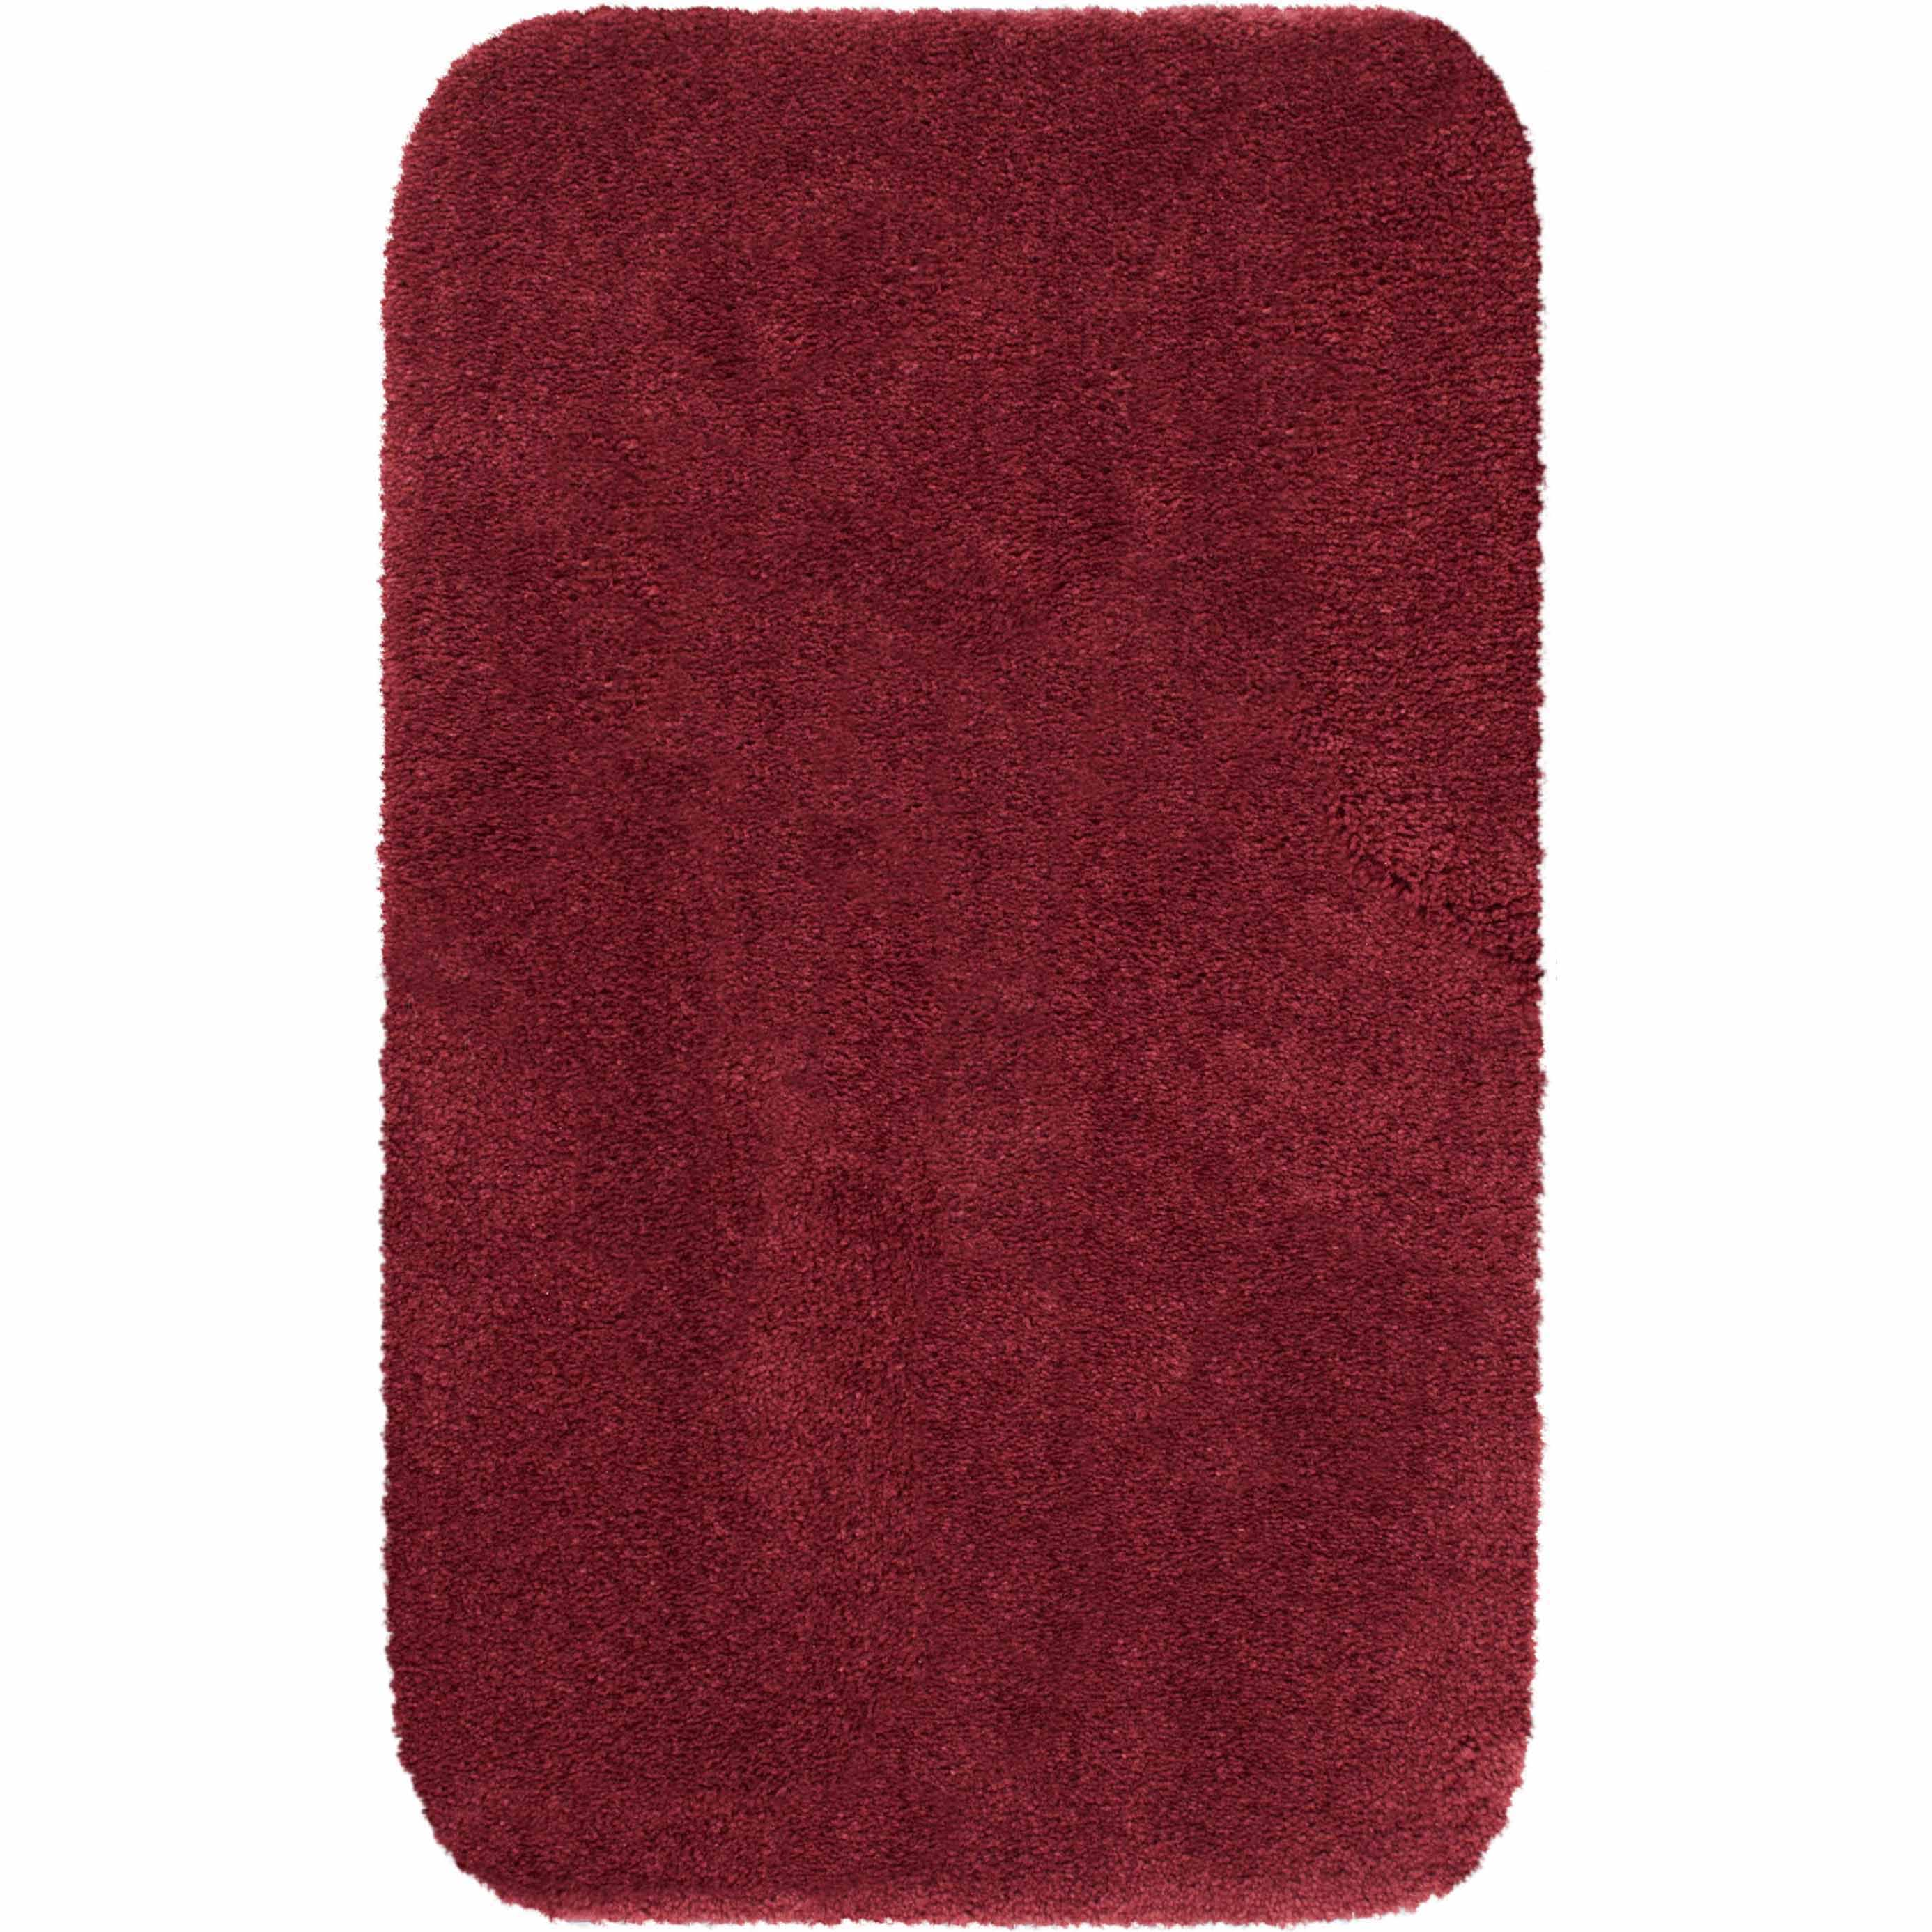 Better Homes & Gardens Extra Soft Bath Rug Collection, Multiple Sizes and Colors